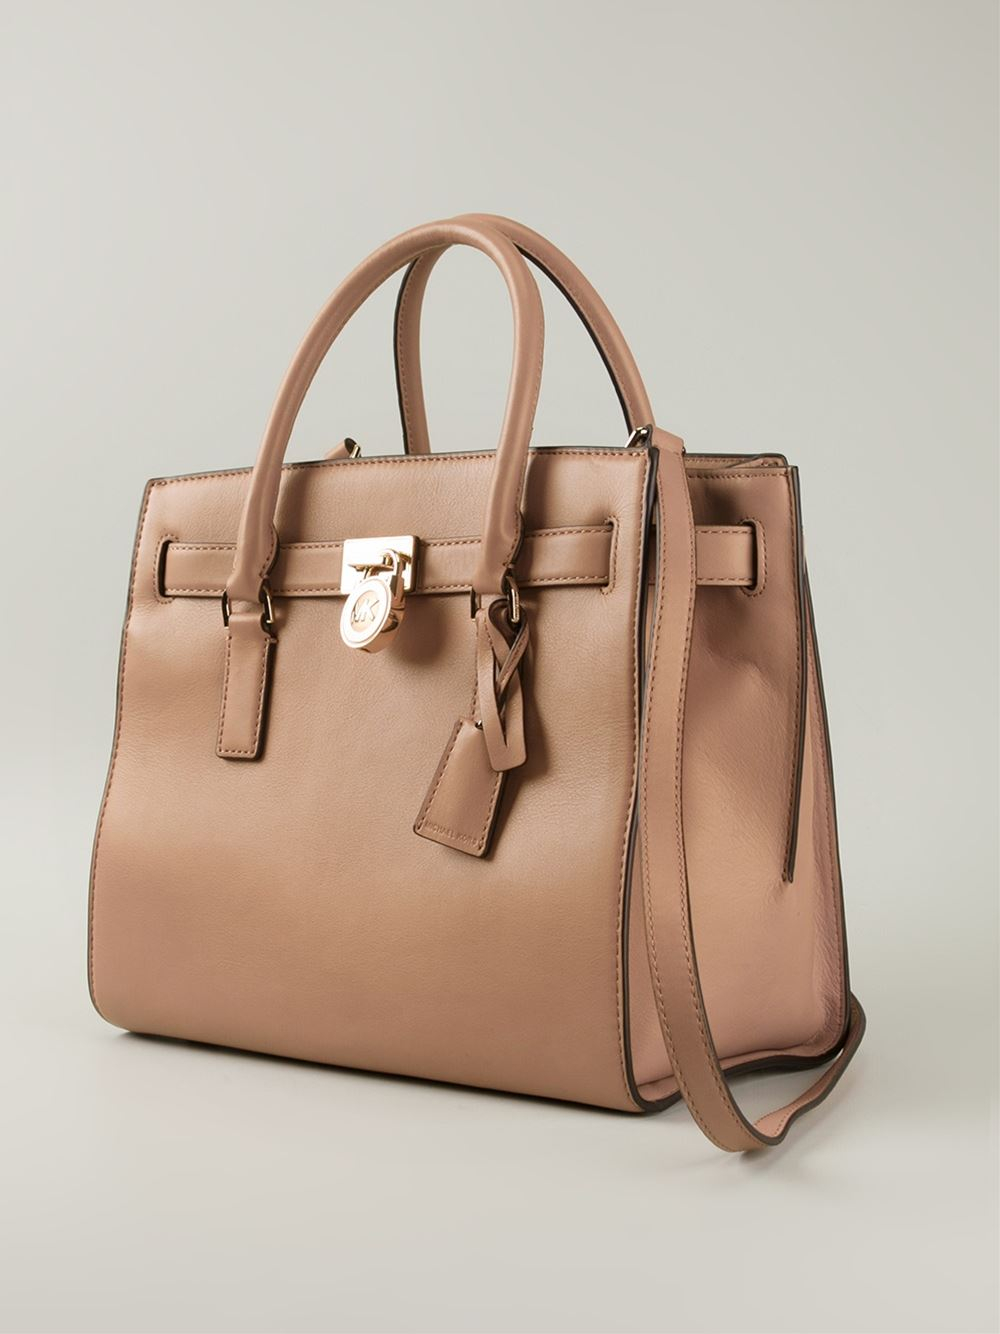 a19e2c10ace6 MICHAEL Michael Kors 'Hamilton' Tote Bag in Natural - Lyst